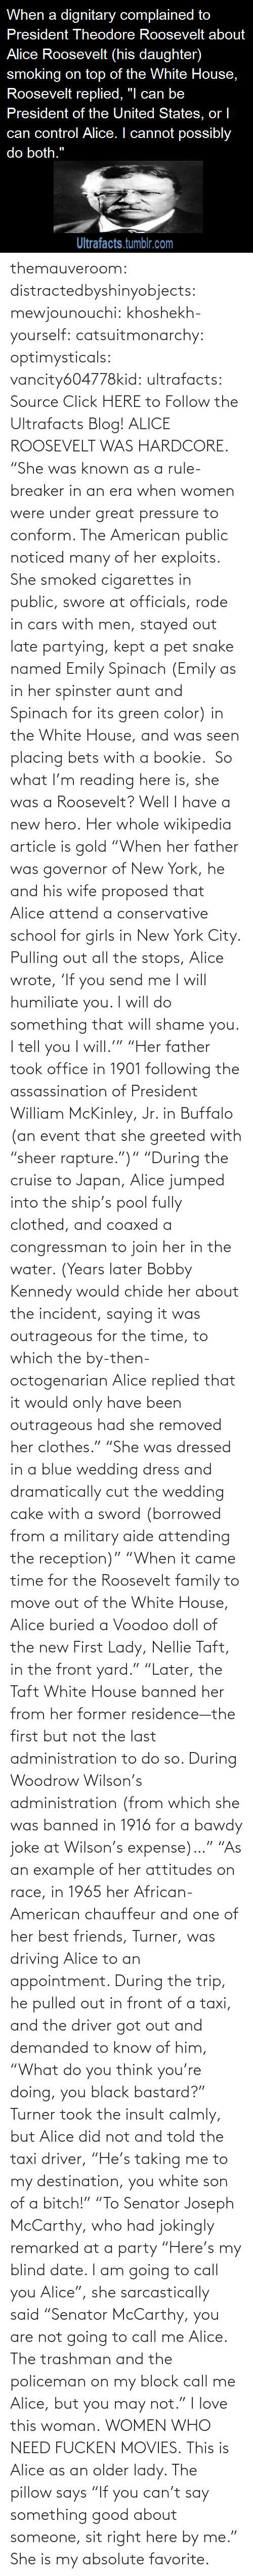 "era: themauveroom: distractedbyshinyobjects:  mewjounouchi:  khoshekh-yourself:  catsuitmonarchy:  optimysticals:  vancity604778kid:  ultrafacts:     Source Click HERE to Follow the Ultrafacts Blog!     ALICE ROOSEVELT WAS HARDCORE. ""She was known as a rule-breaker in an era when women were under great pressure to conform. The American public noticed many of her exploits. She smoked cigarettes in public, swore at officials, rode in cars with men, stayed out late partying, kept a pet snake named Emily Spinach (Emily as in her spinster aunt and Spinach for its green color) in the White House, and was seen placing bets with a bookie.    So what I'm reading here is, she was a Roosevelt?  Well I have a new hero.  Her whole wikipedia article is gold ""When her father was governor of New York, he and his wife proposed that Alice attend a conservative school for girls in New York City. Pulling out all the stops, Alice wrote, 'If you send me I will humiliate you. I will do something that will shame you. I tell you I will.'"" ""Her father took office in 1901 following the assassination of President William McKinley, Jr. in Buffalo (an event that she greeted with ""sheer rapture."")"" ""During the cruise to Japan, Alice jumped into the ship's pool fully clothed, and coaxed a congressman to join her in the water. (Years later Bobby Kennedy would chide her about the incident, saying it was outrageous for the time, to which the by-then-octogenarian Alice replied that it would only have been outrageous had she removed her clothes."" ""She was dressed in a blue wedding dress and dramatically cut the wedding cake with a sword (borrowed from a military aide attending the reception)"" ""When it came time for the Roosevelt family to move out of the White House, Alice buried a Voodoo doll of the new First Lady, Nellie Taft, in the front yard."" ""Later, the Taft White House banned her from her former residence—the first but not the last administration to do so. During Woodrow Wilson's administration (from which she was banned in 1916 for a bawdy joke at Wilson's expense)…"" ""As an example of her attitudes on race, in 1965 her African-American chauffeur and one of her best friends, Turner, was driving Alice to an appointment. During the trip, he pulled out in front of a taxi, and the driver got out and demanded to know of him, ""What do you think you're doing, you black bastard?"" Turner took the insult calmly, but Alice did not and told the taxi driver, ""He's taking me to my destination, you white son of a bitch!"" ""To Senator Joseph McCarthy, who had jokingly remarked at a party ""Here's my blind date. I am going to call you Alice"", she sarcastically said ""Senator McCarthy, you are not going to call me Alice. The trashman and the policeman on my block call me Alice, but you may not.""  I love this woman.  WOMEN WHO NEED FUCKEN MOVIES.   This is Alice as an older lady. The pillow says ""If you can't say something good about someone, sit right here by me.""  She is my absolute favorite."